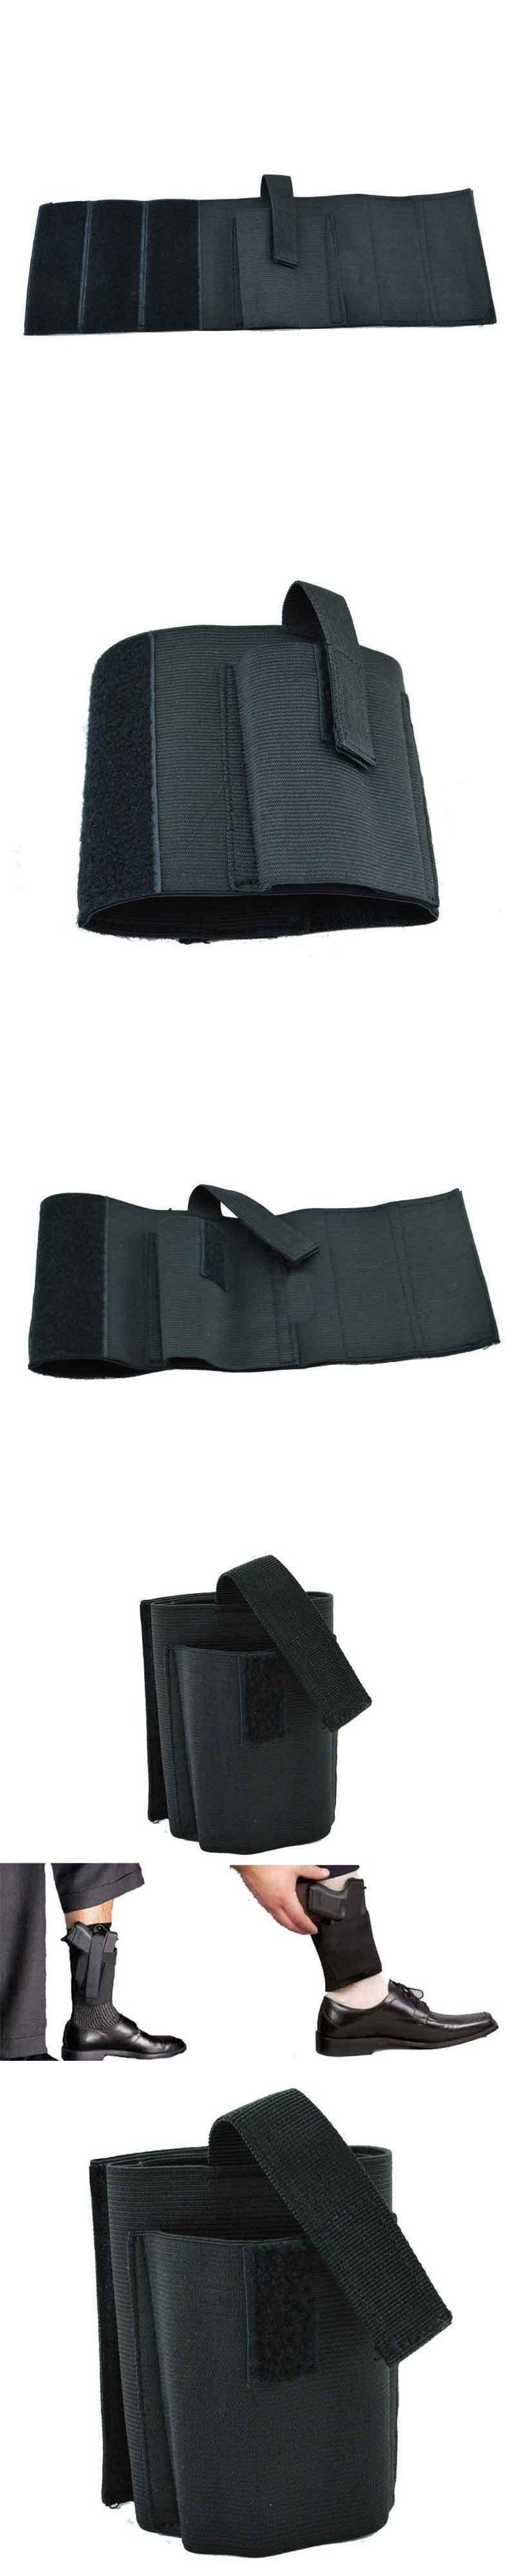 Concealed Universal Ankle Holster Carry Fits Ruger LC9 LCP Glock 42 43 36 26 S&W Bodyguard .380 .38 Similar Size Handgun